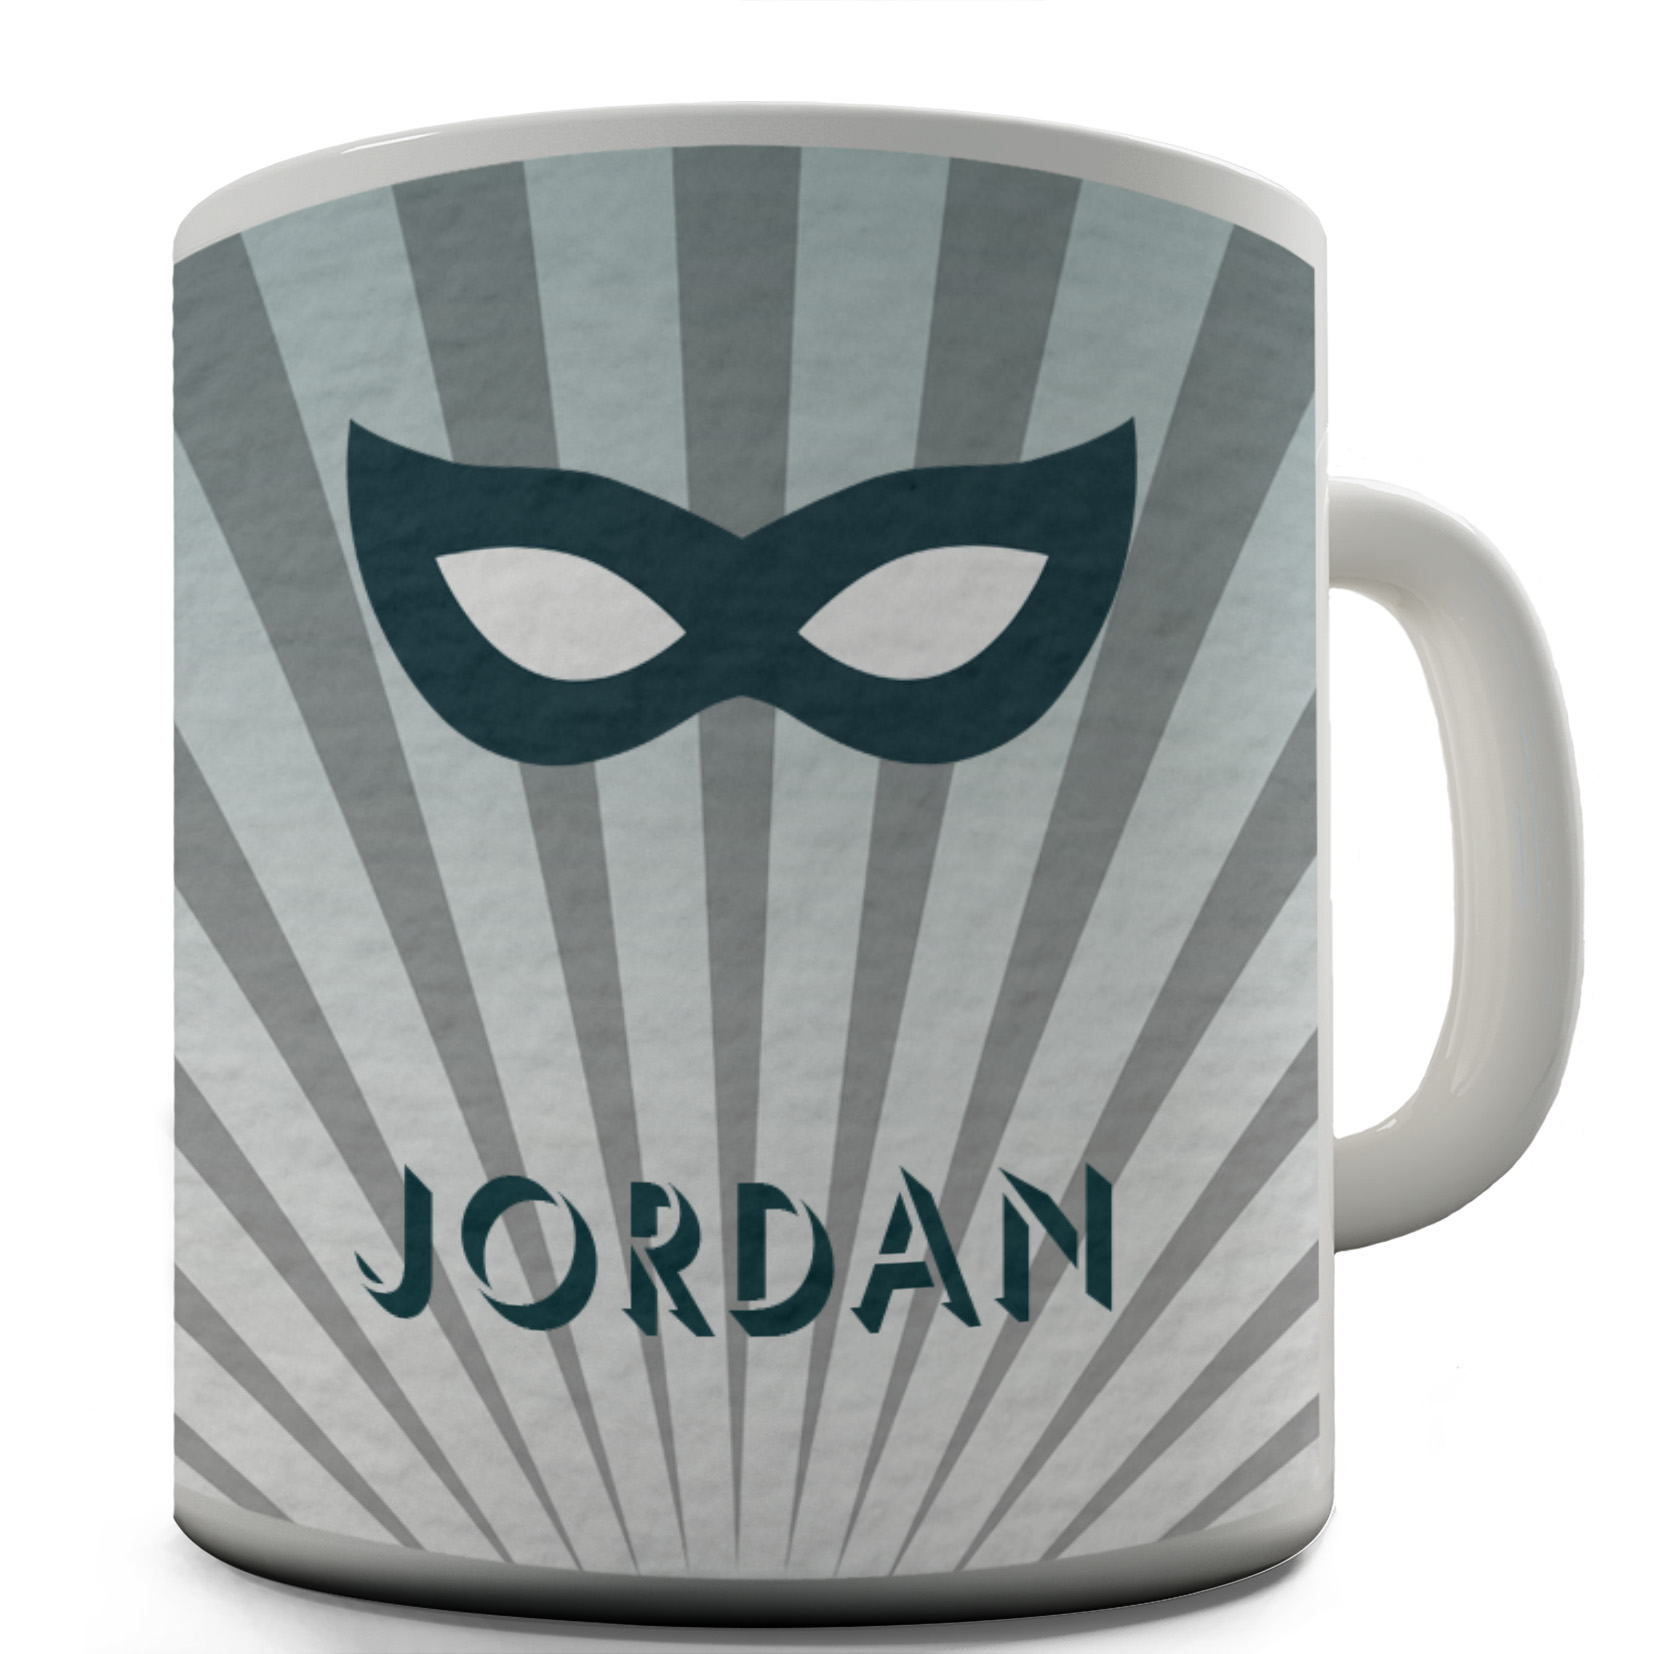 Funny Mugs For Coworkers Personalised Superhero Blue Mask By 15 OZ